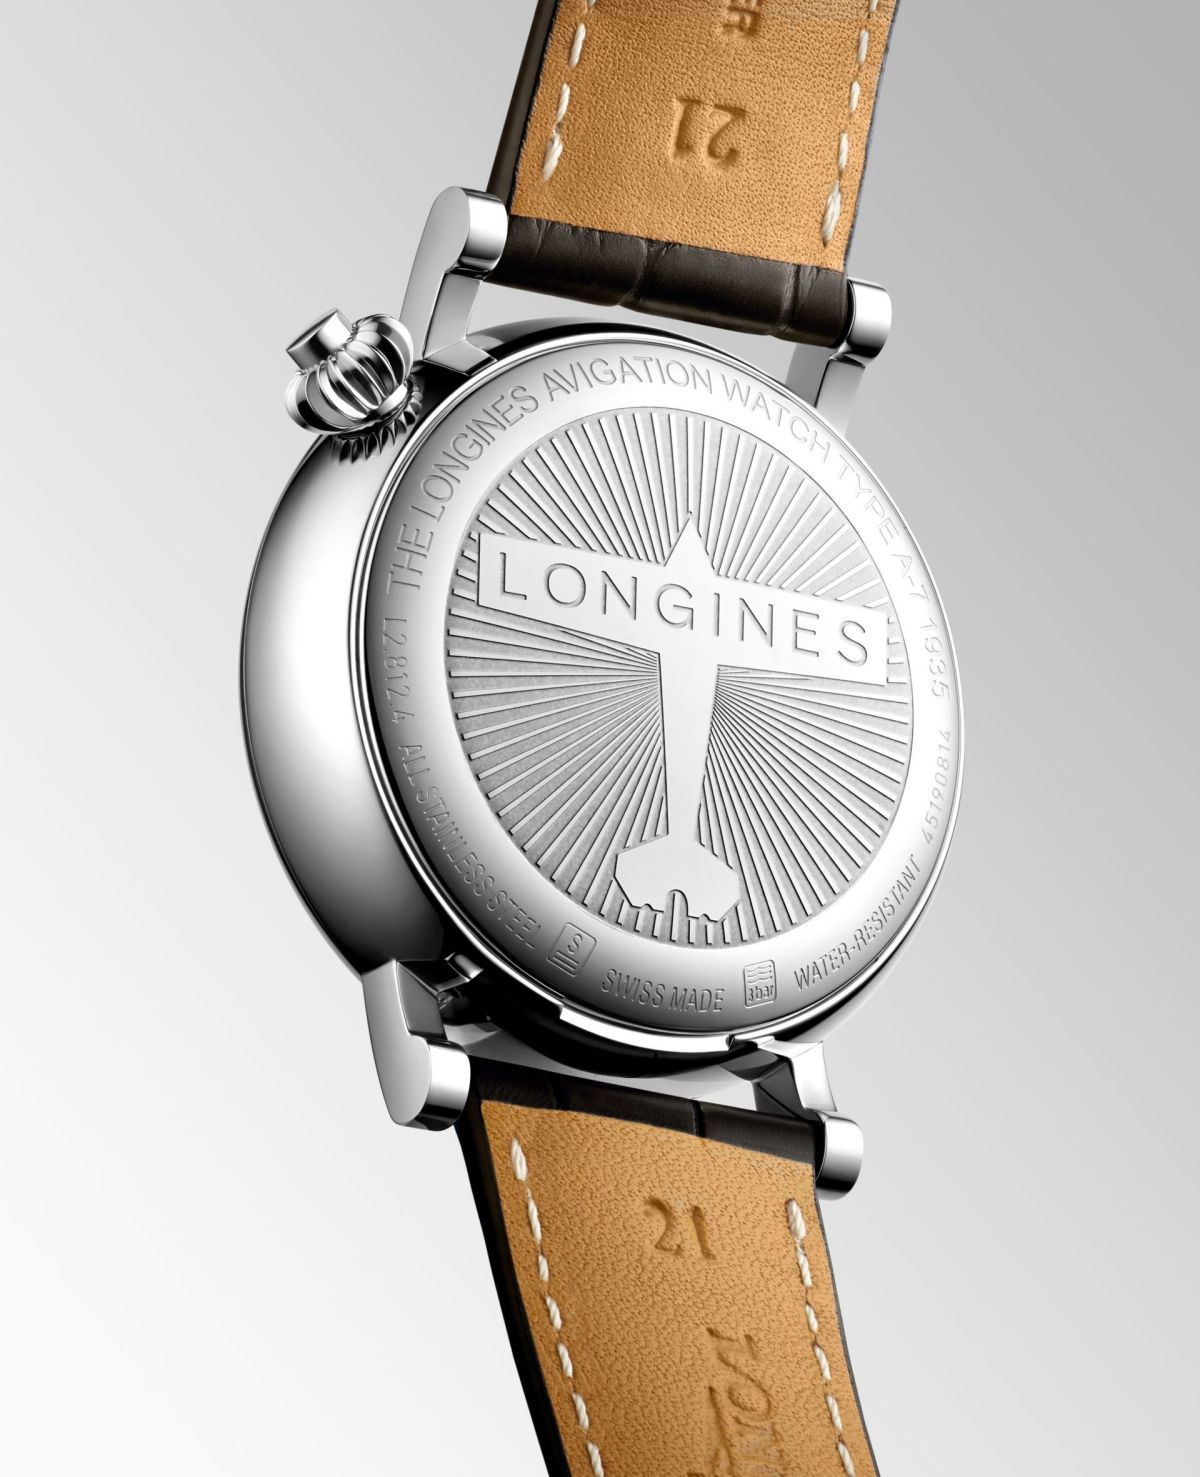 Longines-Avigation-Watch-Type-A-7-1935-5.jpg